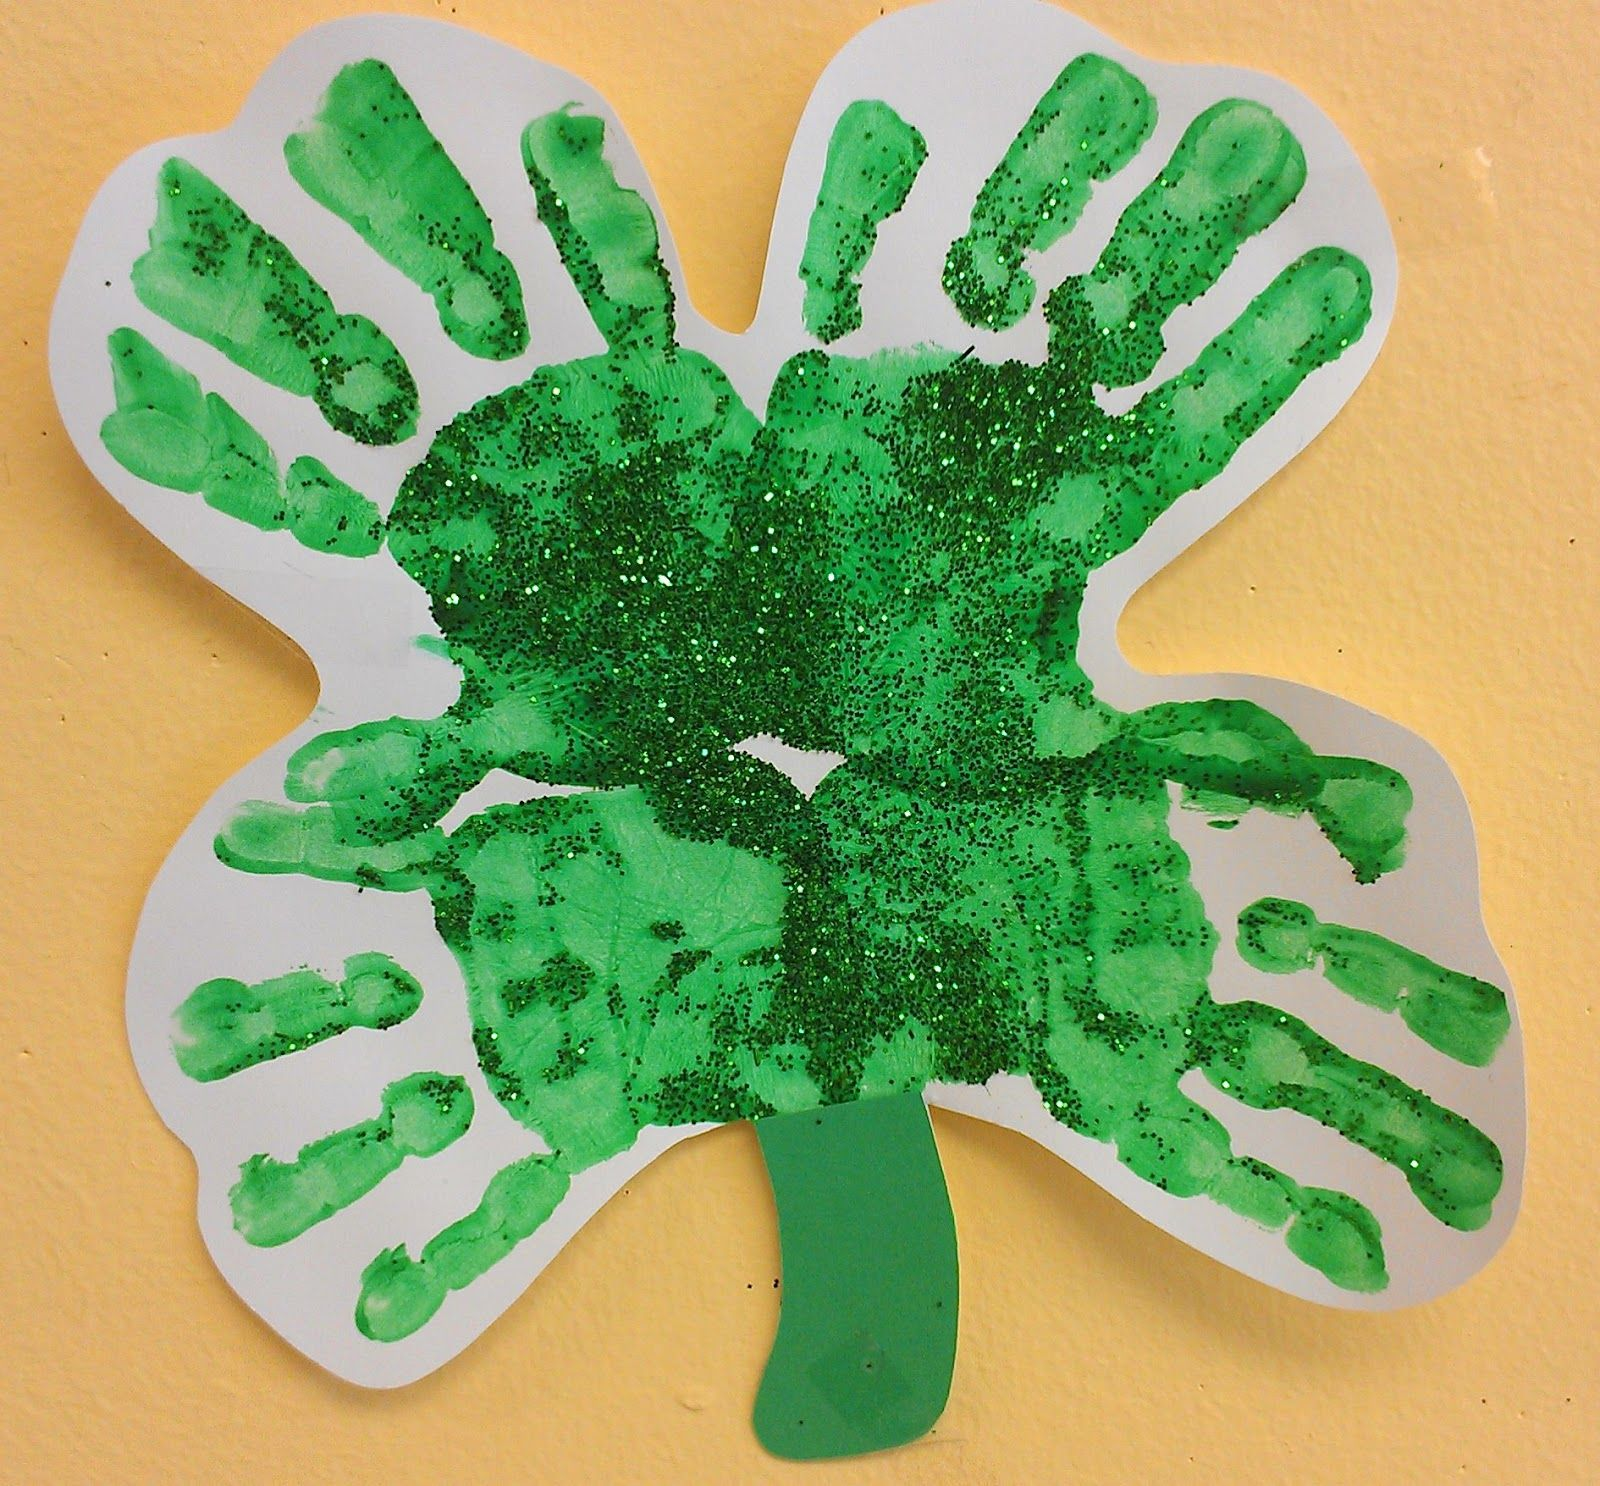 St patricks day preschool crafts - Preschool Ideas For 2 Year Olds Hand Print Craftshand Printsst Patricks Dayst